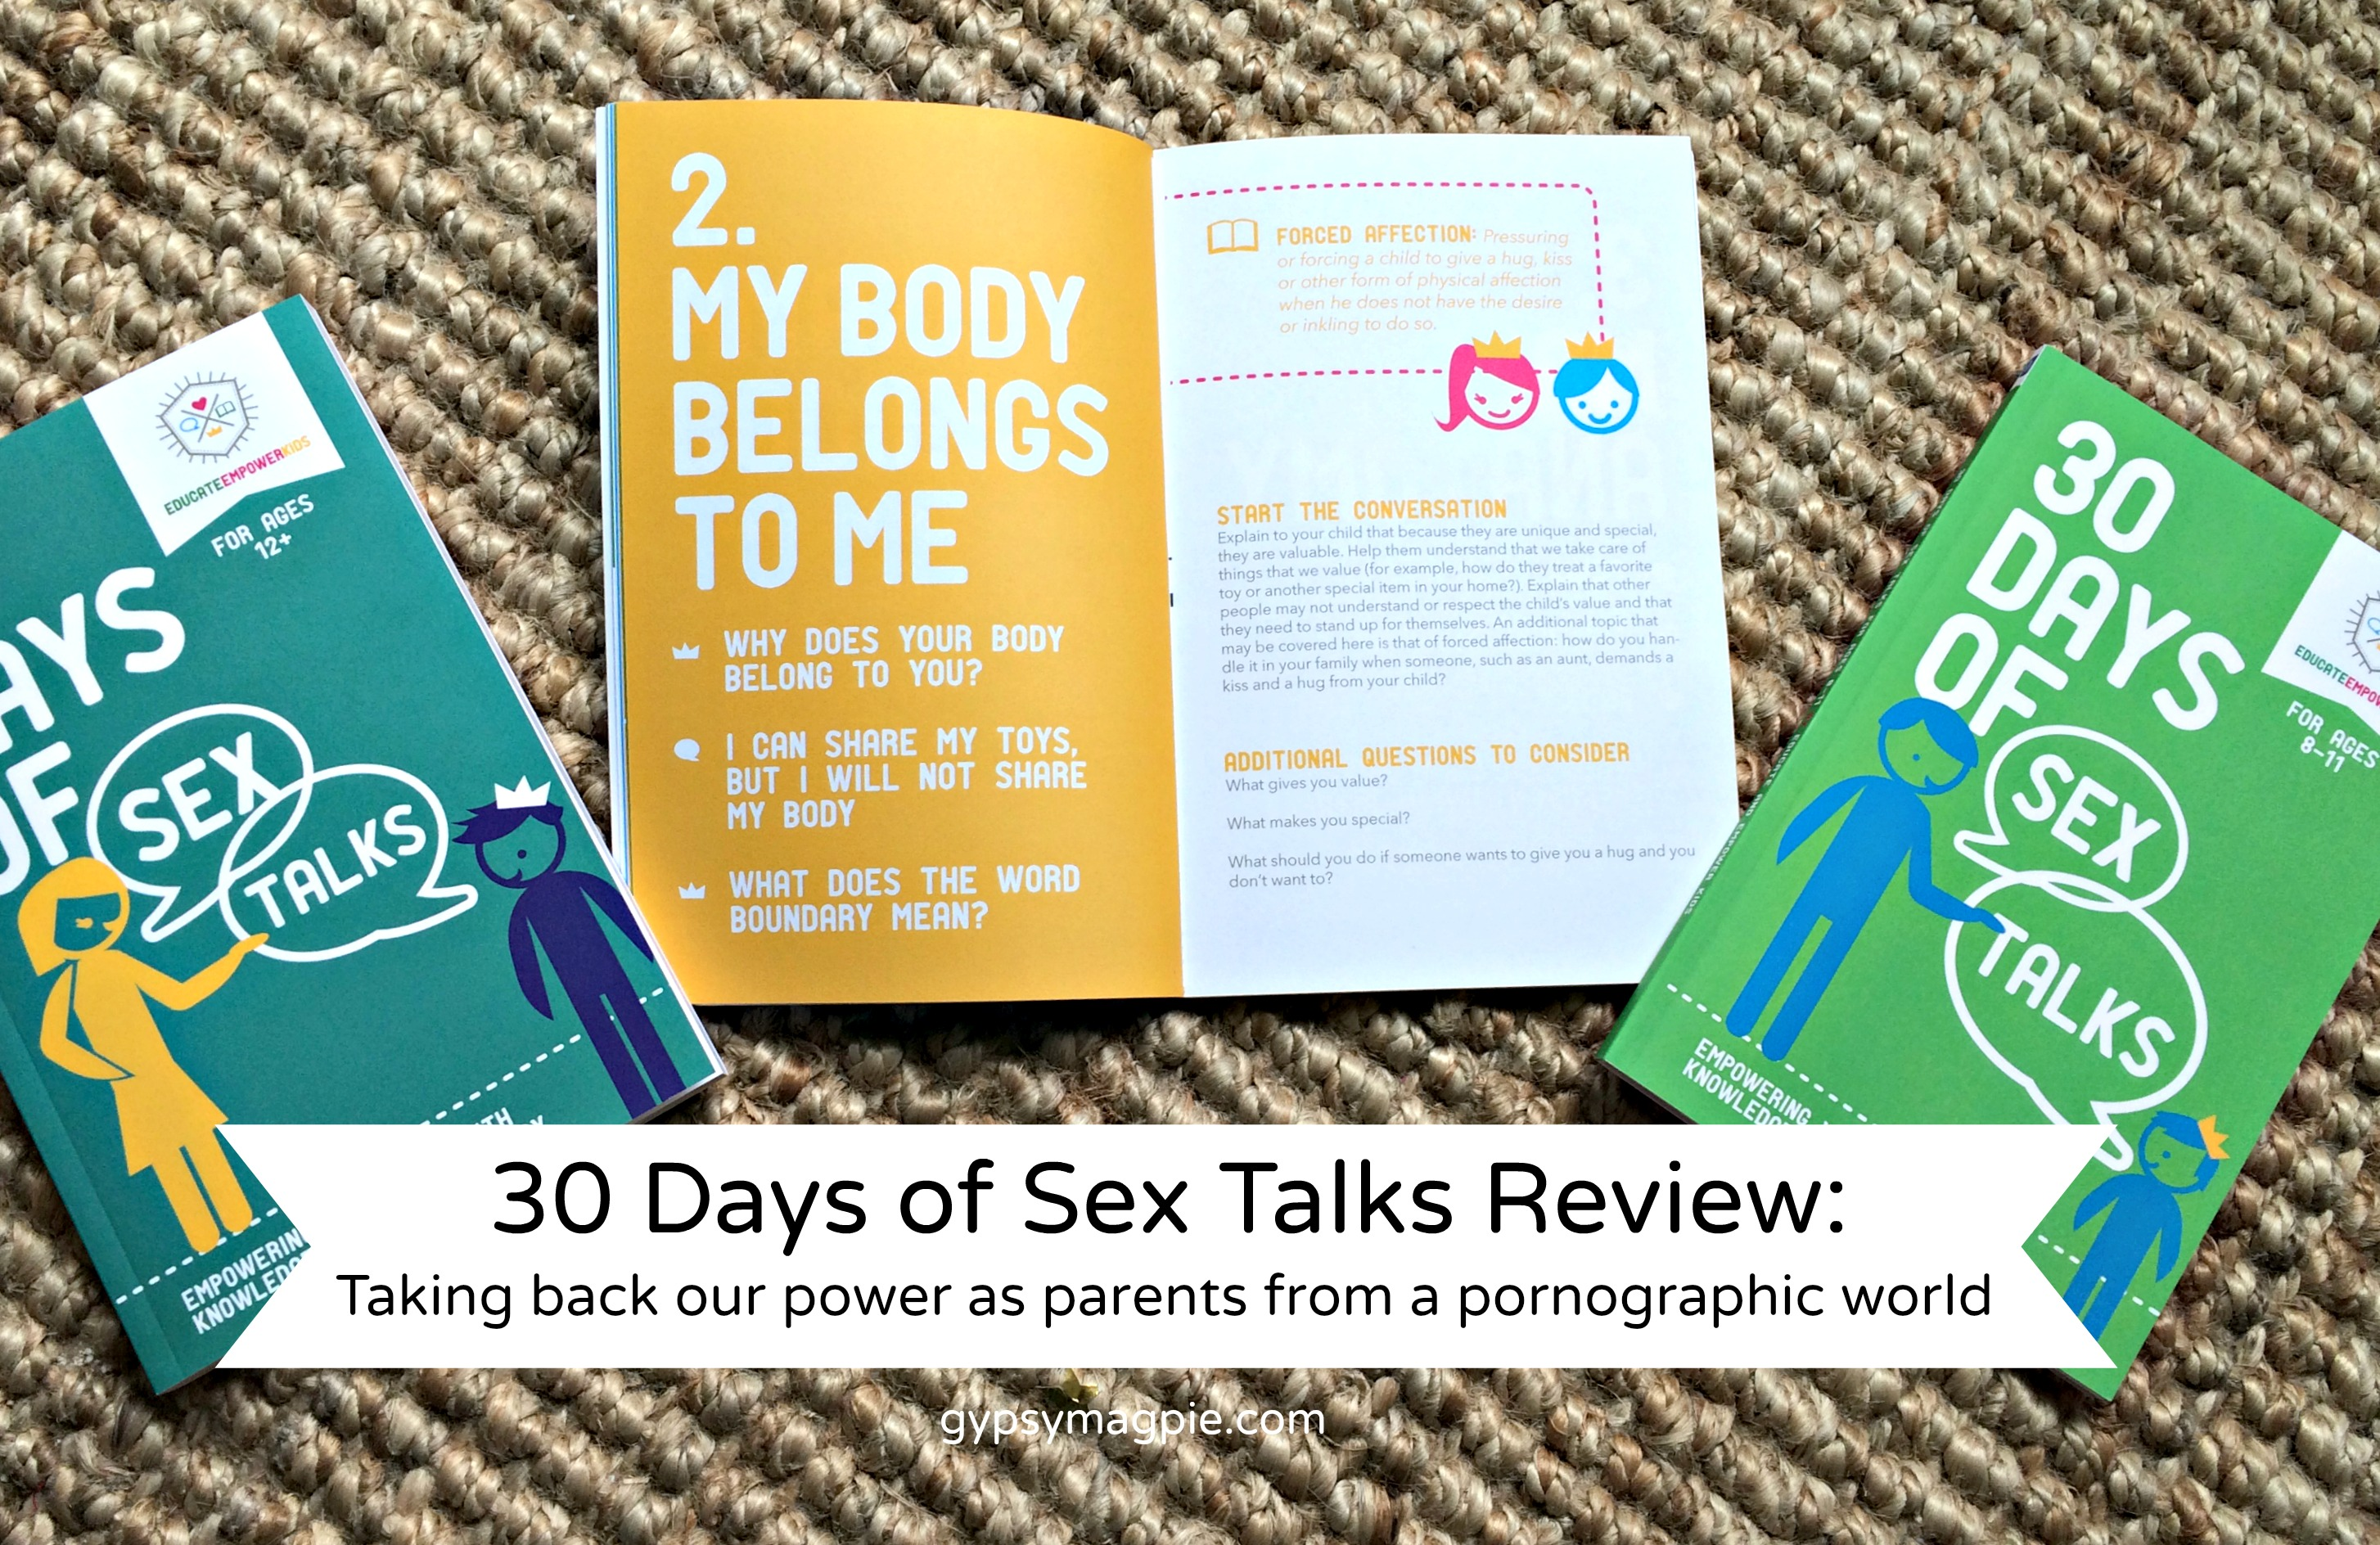 30 Days of Sex Talks Review: Taking back our power as parents form a pornographic world